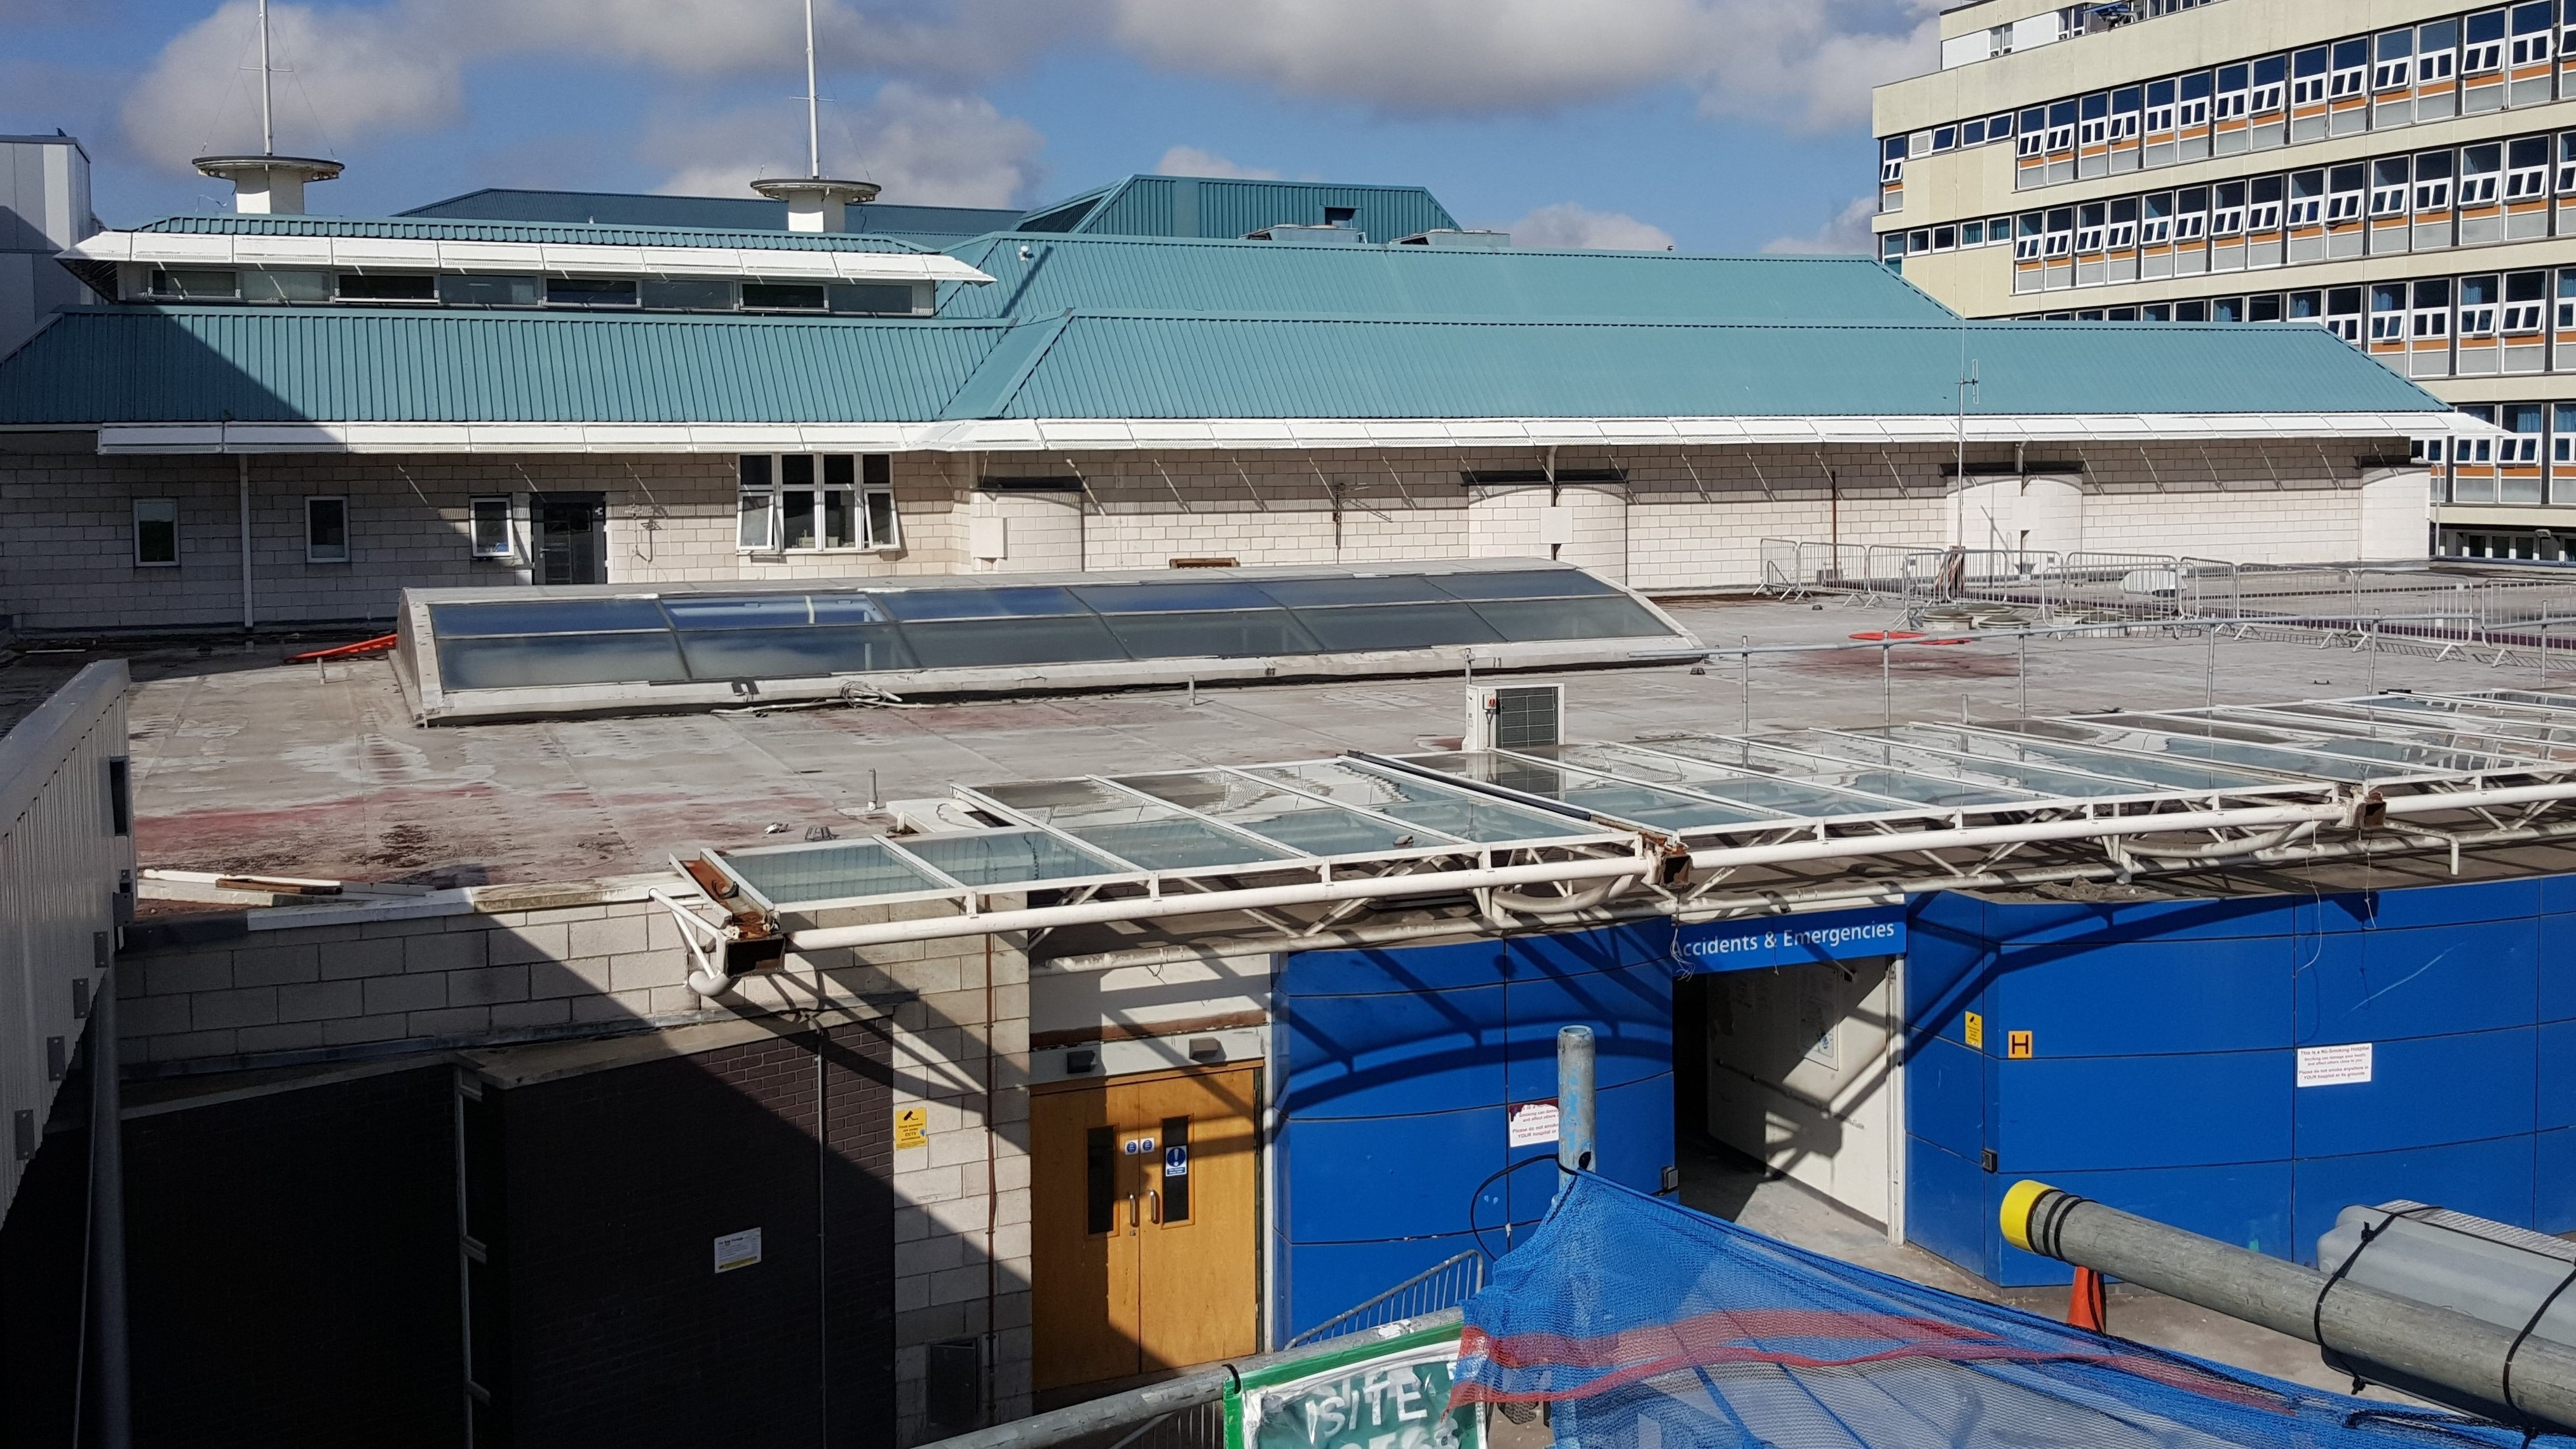 Aintree Hospital Reynolux Roofing Cladding Longworth Aintree Hospital Liverpool Fatra Optimo Traditional Textures (11)